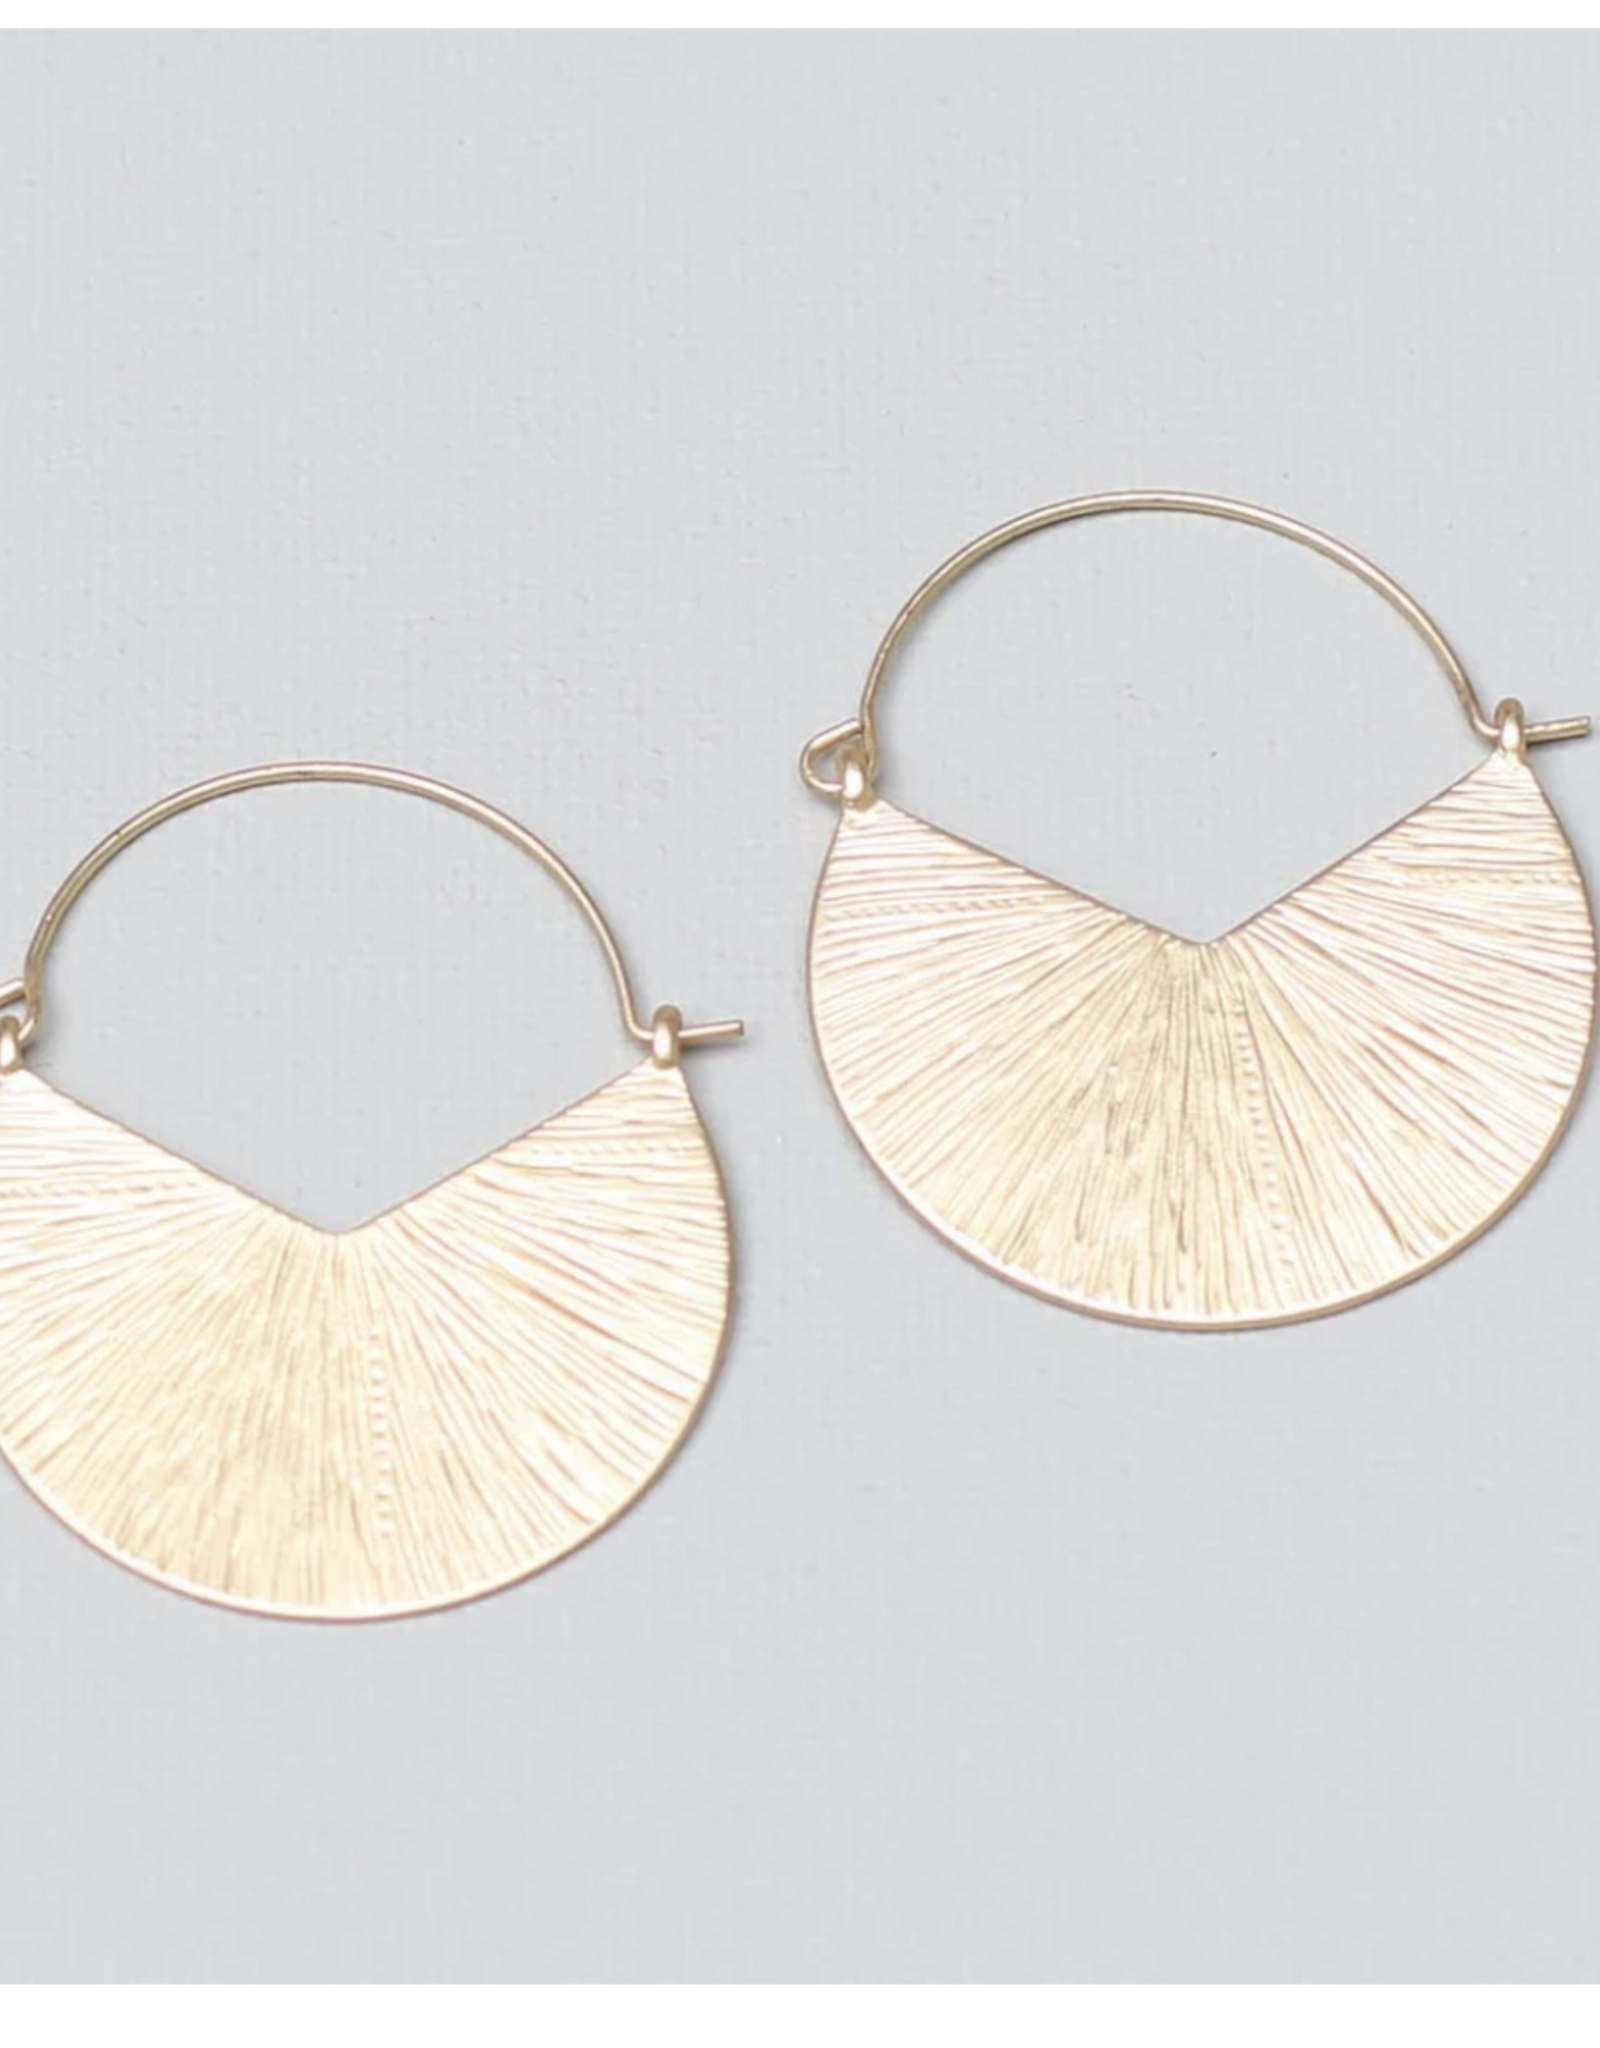 Michelle McDowell Gold Camilia earrings